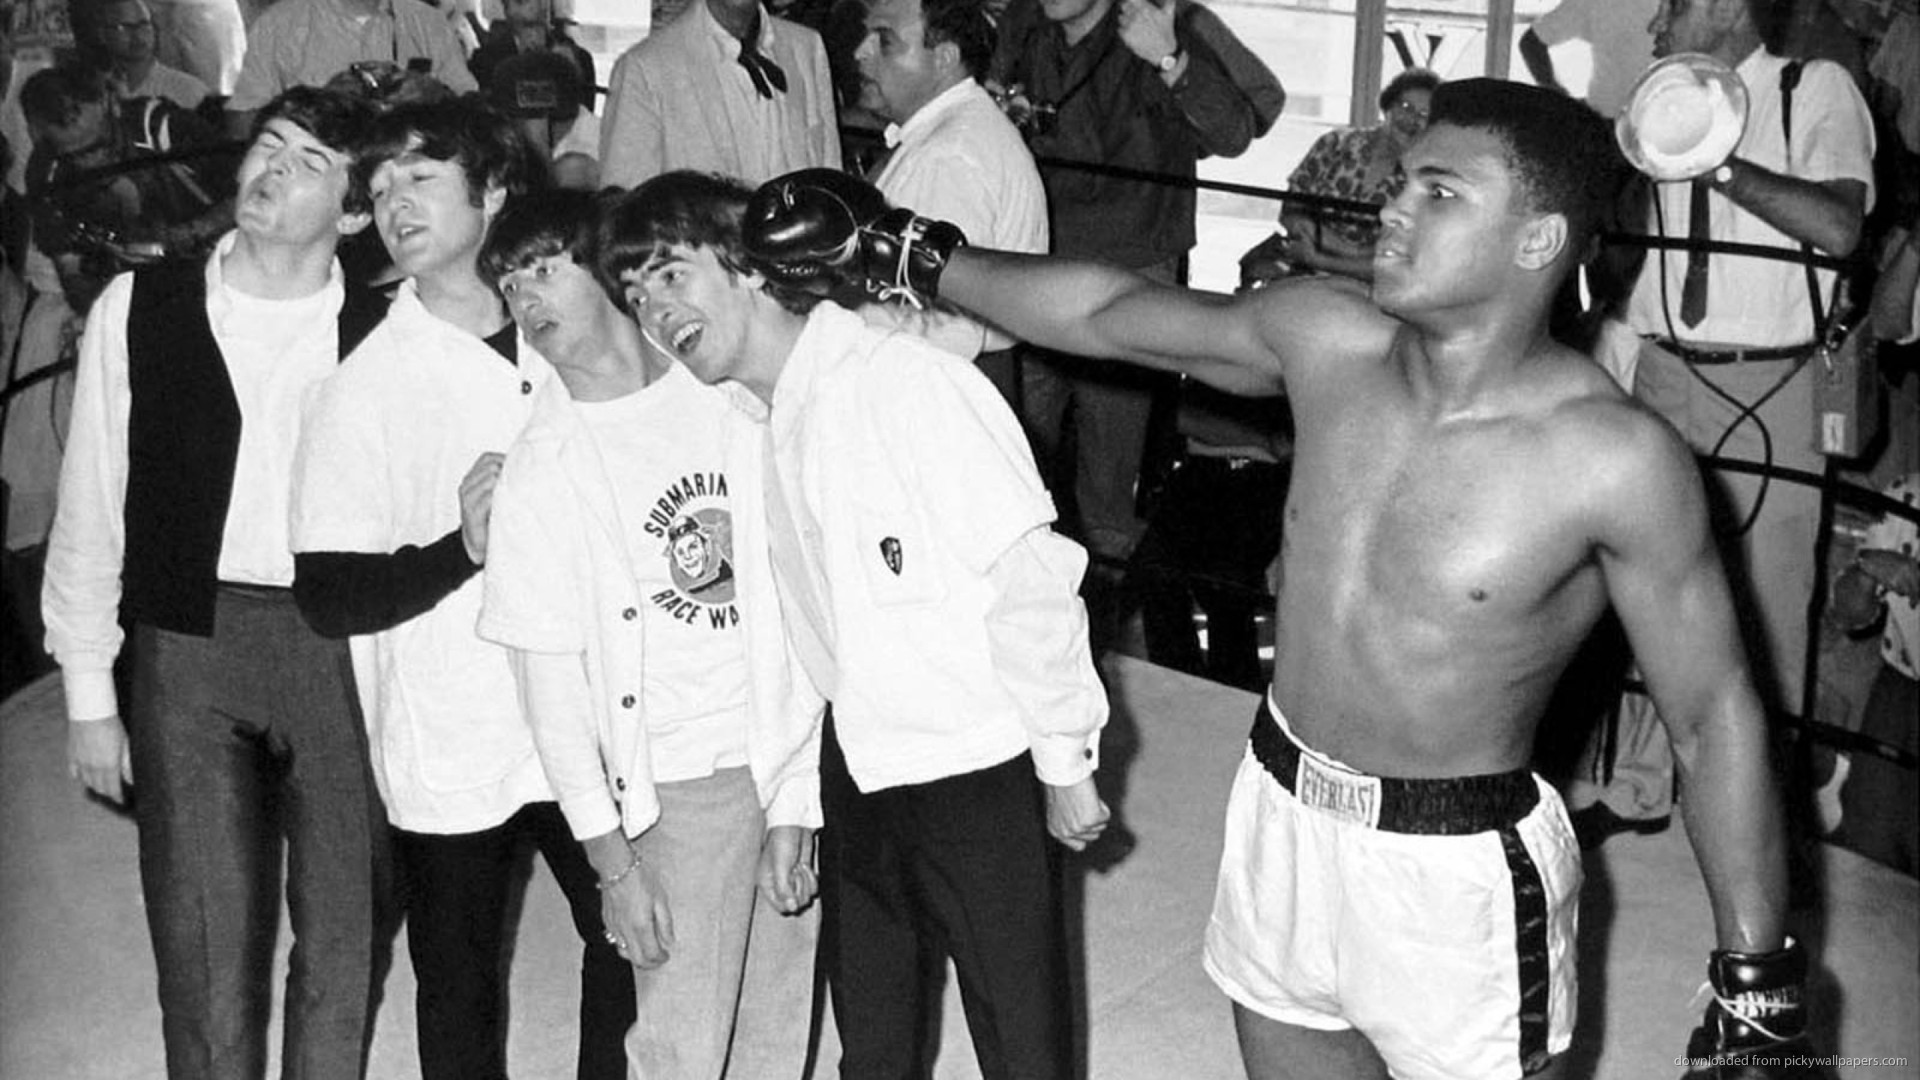 1920x1080 The Beatles With Muhammad Ali for